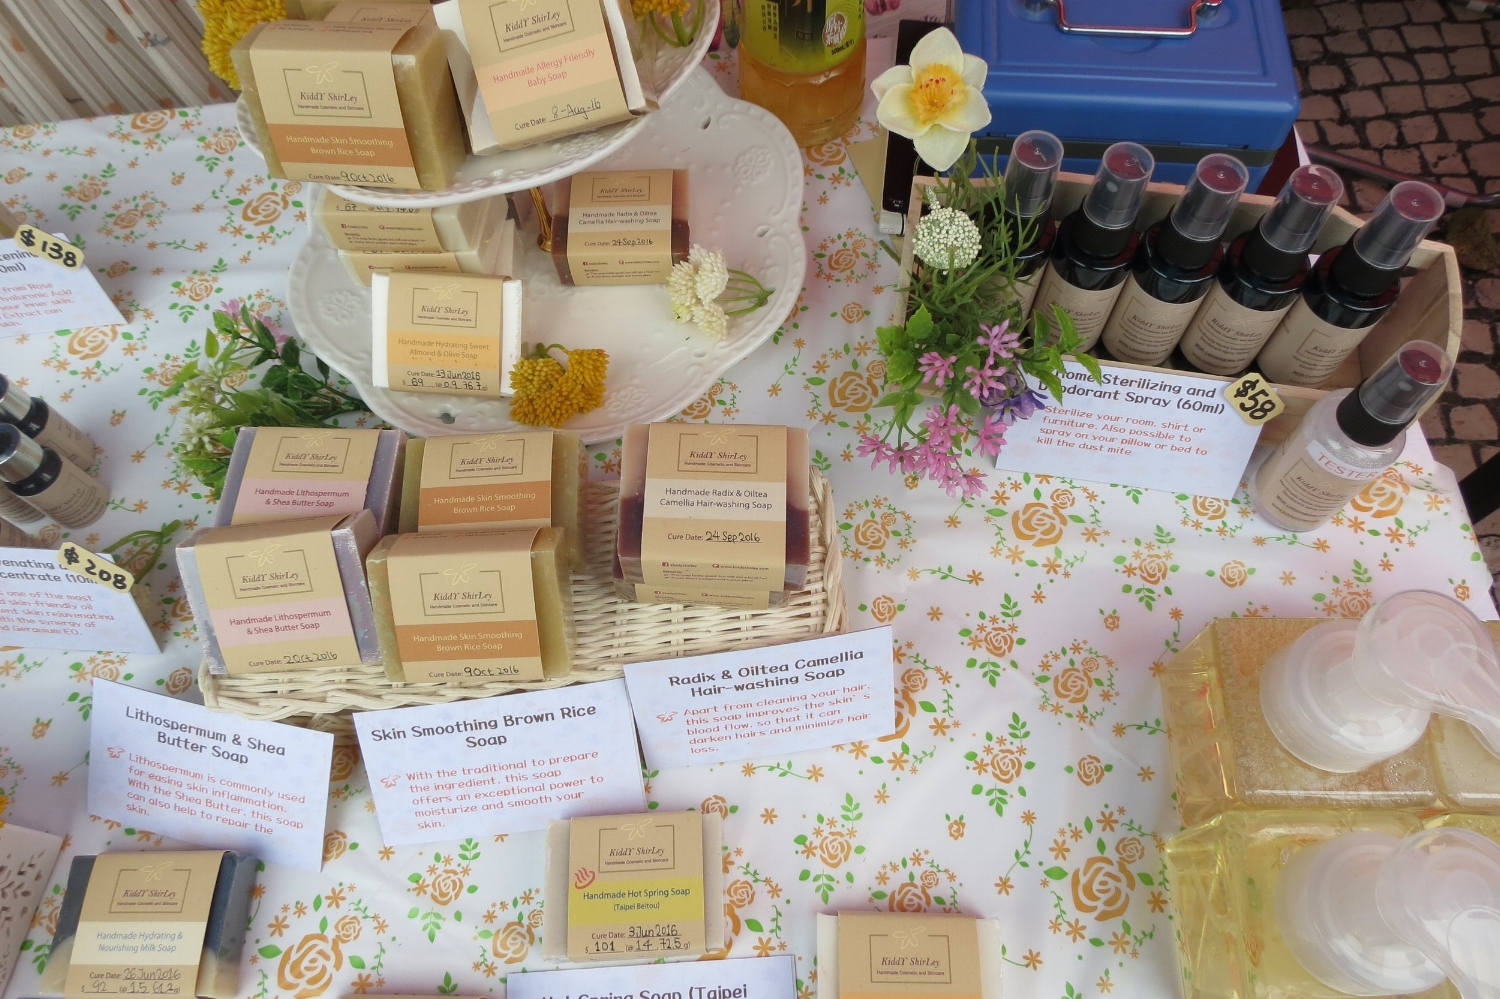 Kiddy Shirley soaps for sale at Handmade Hong Kong Market